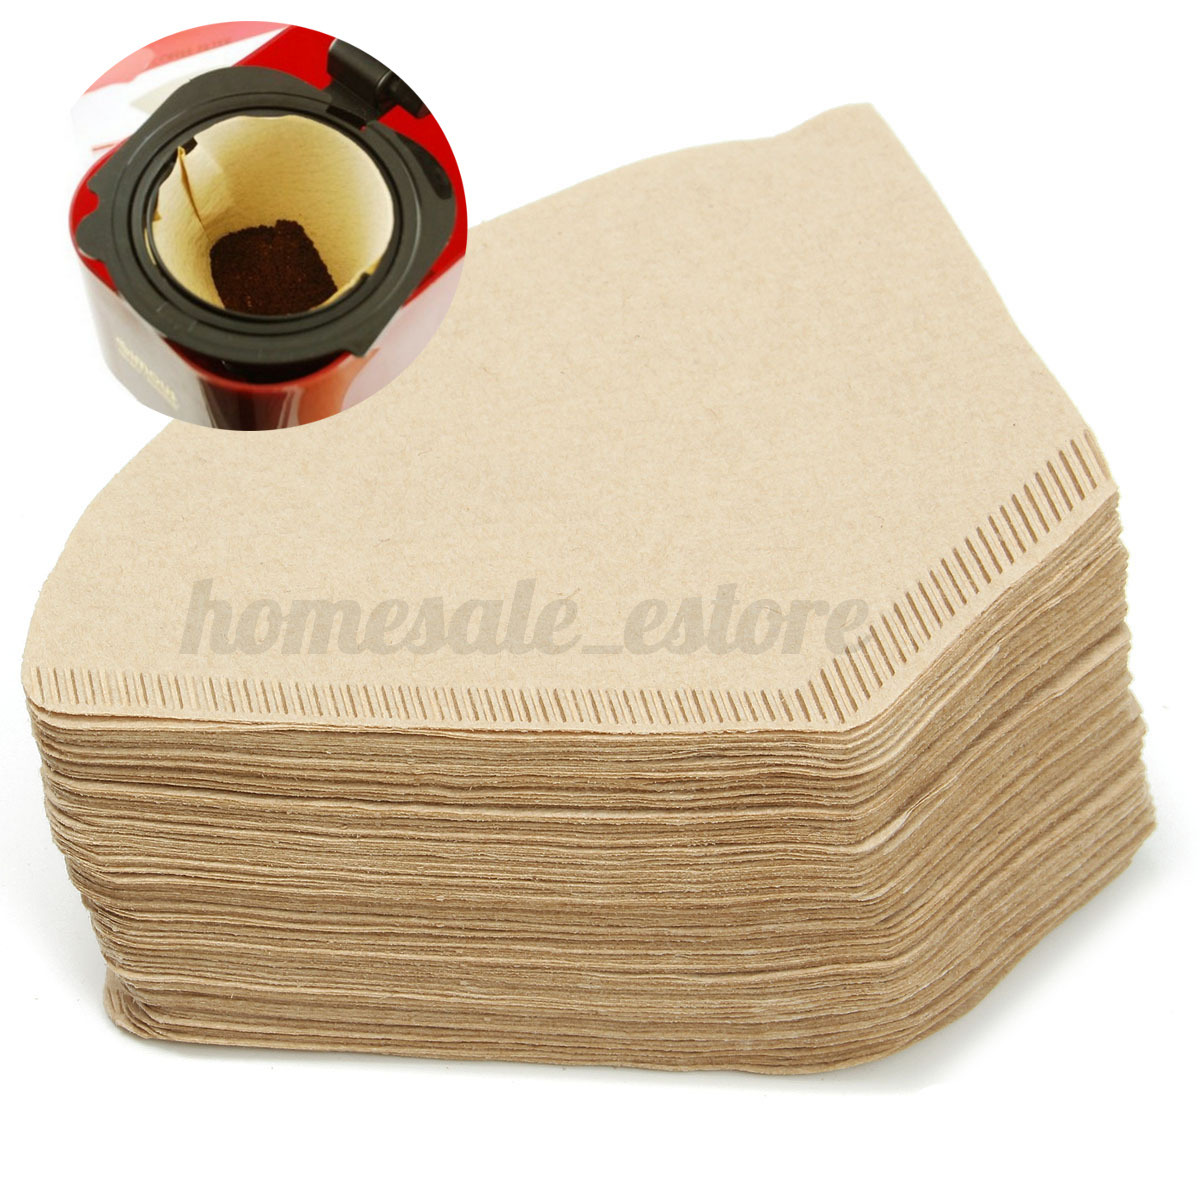 Coffee Maker Filter Papers : 100pcs White Coffee Paper Filter Poured Drip Espresso Machine Brewer Cup Maker eBay